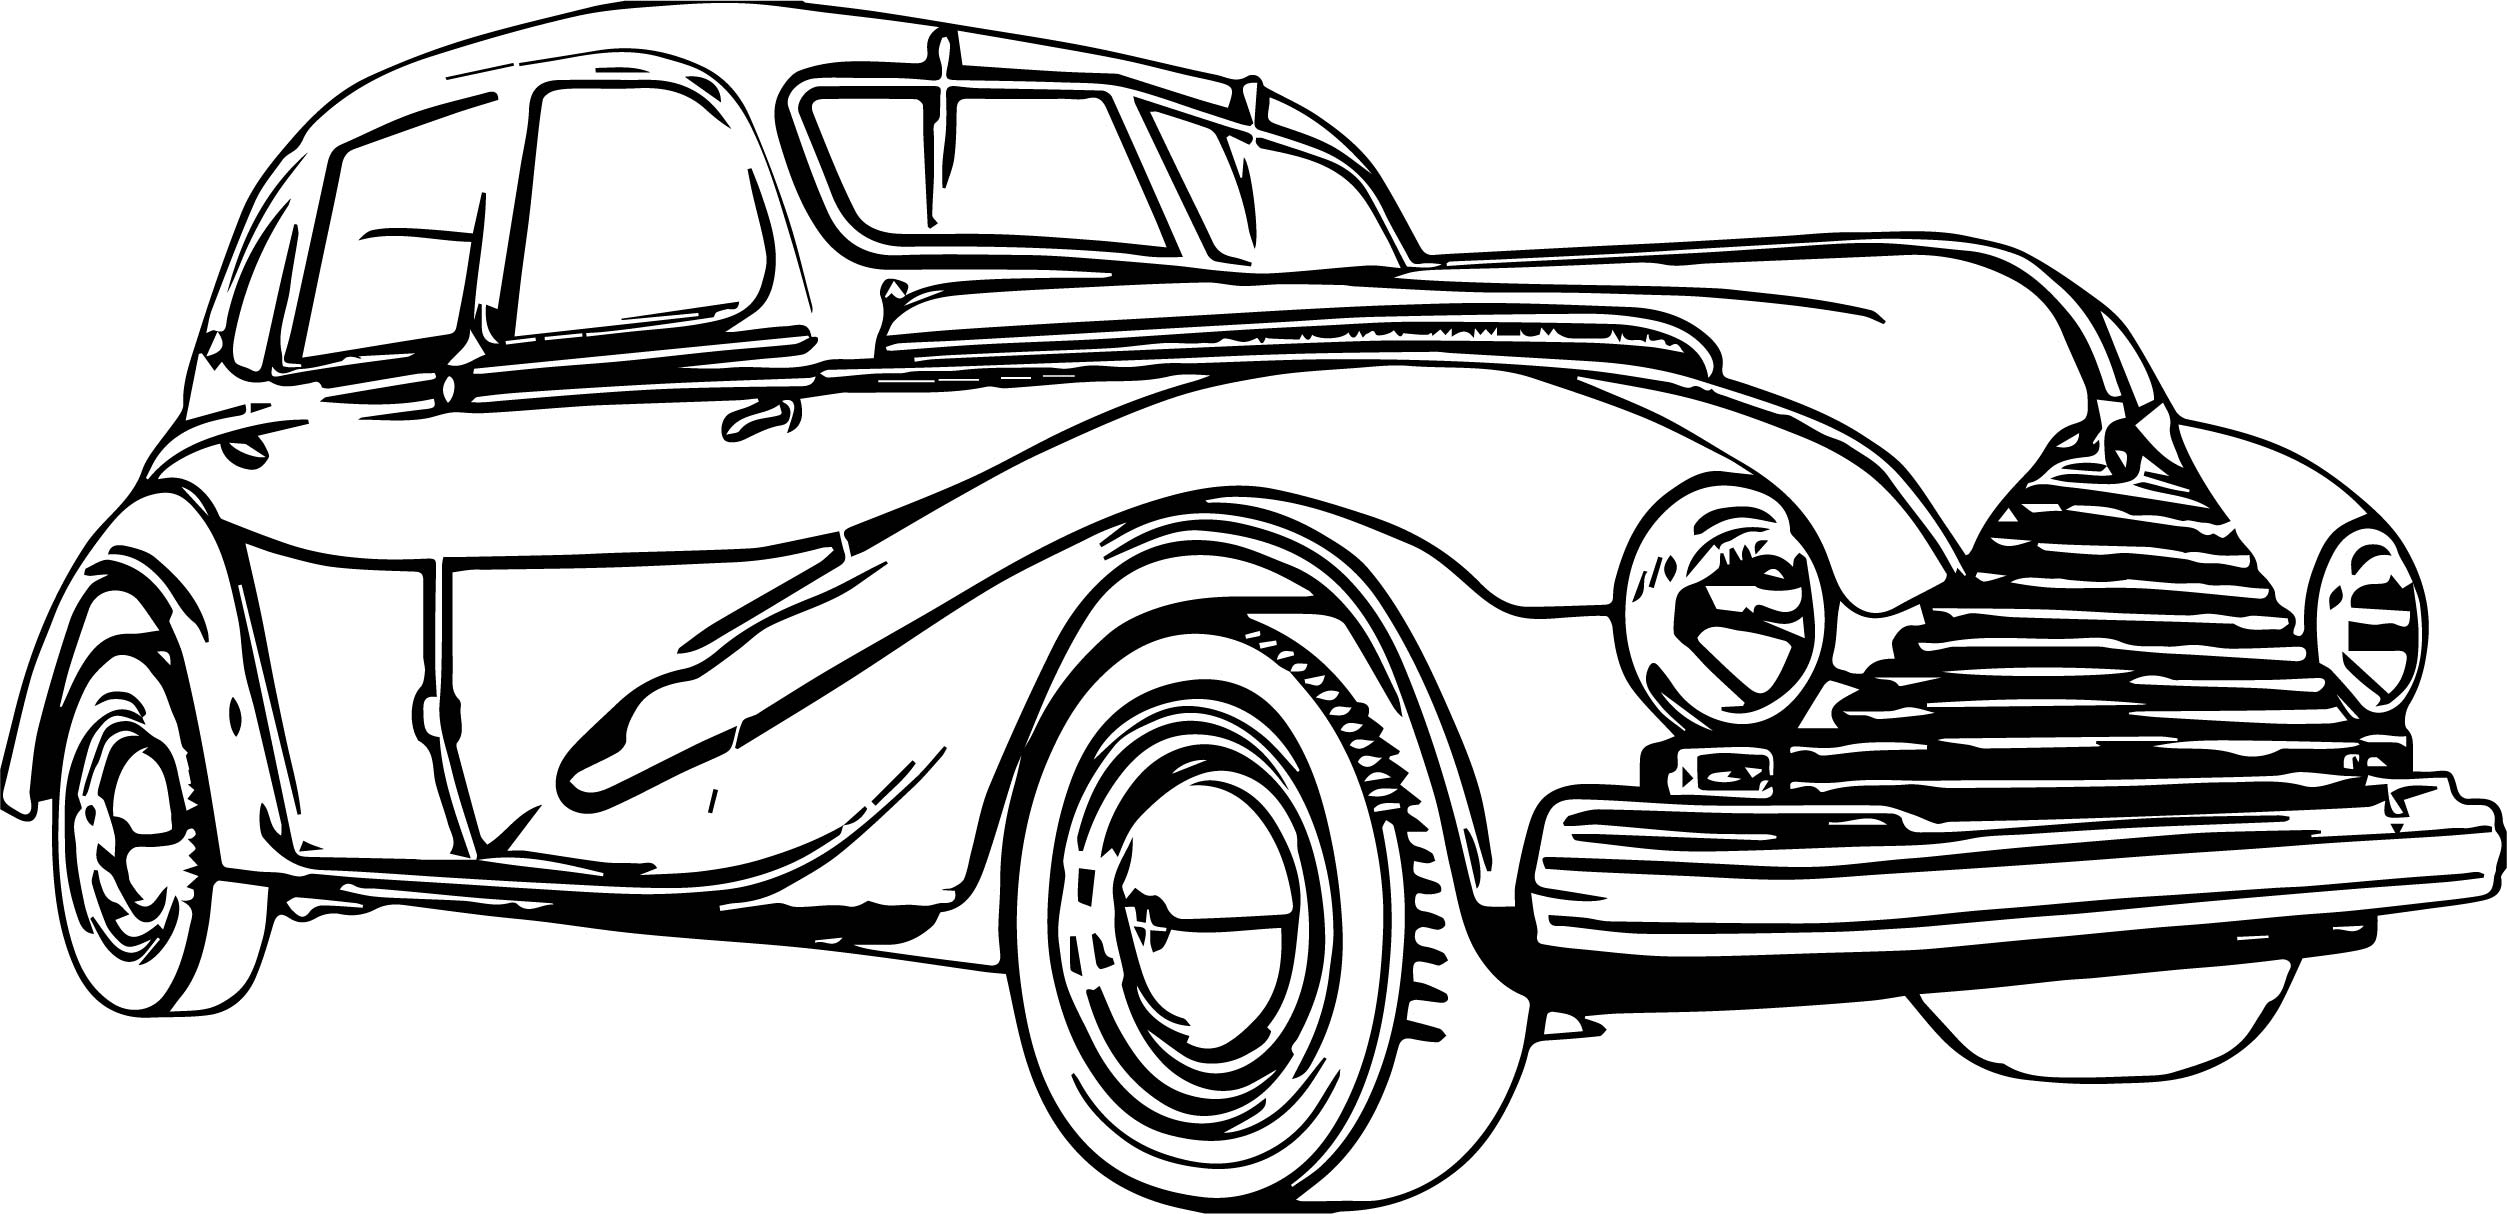 2507x1214 Small Vintage Antique Car Coloring Page Wecoloringpage